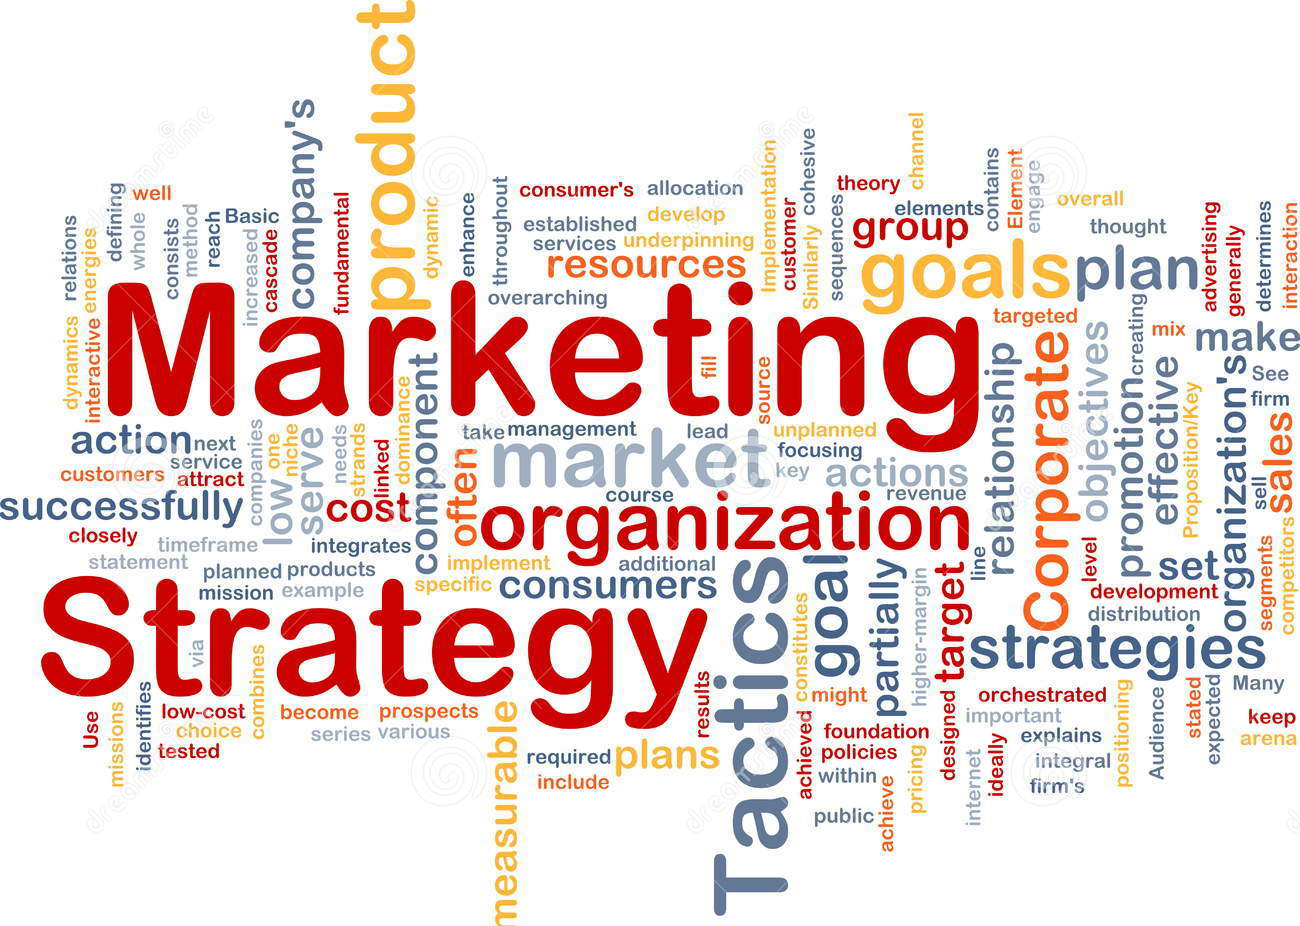 marketing management strategy Strategic marketing management helps organizations to organize their marketing activities to align with the organizations' business goals.